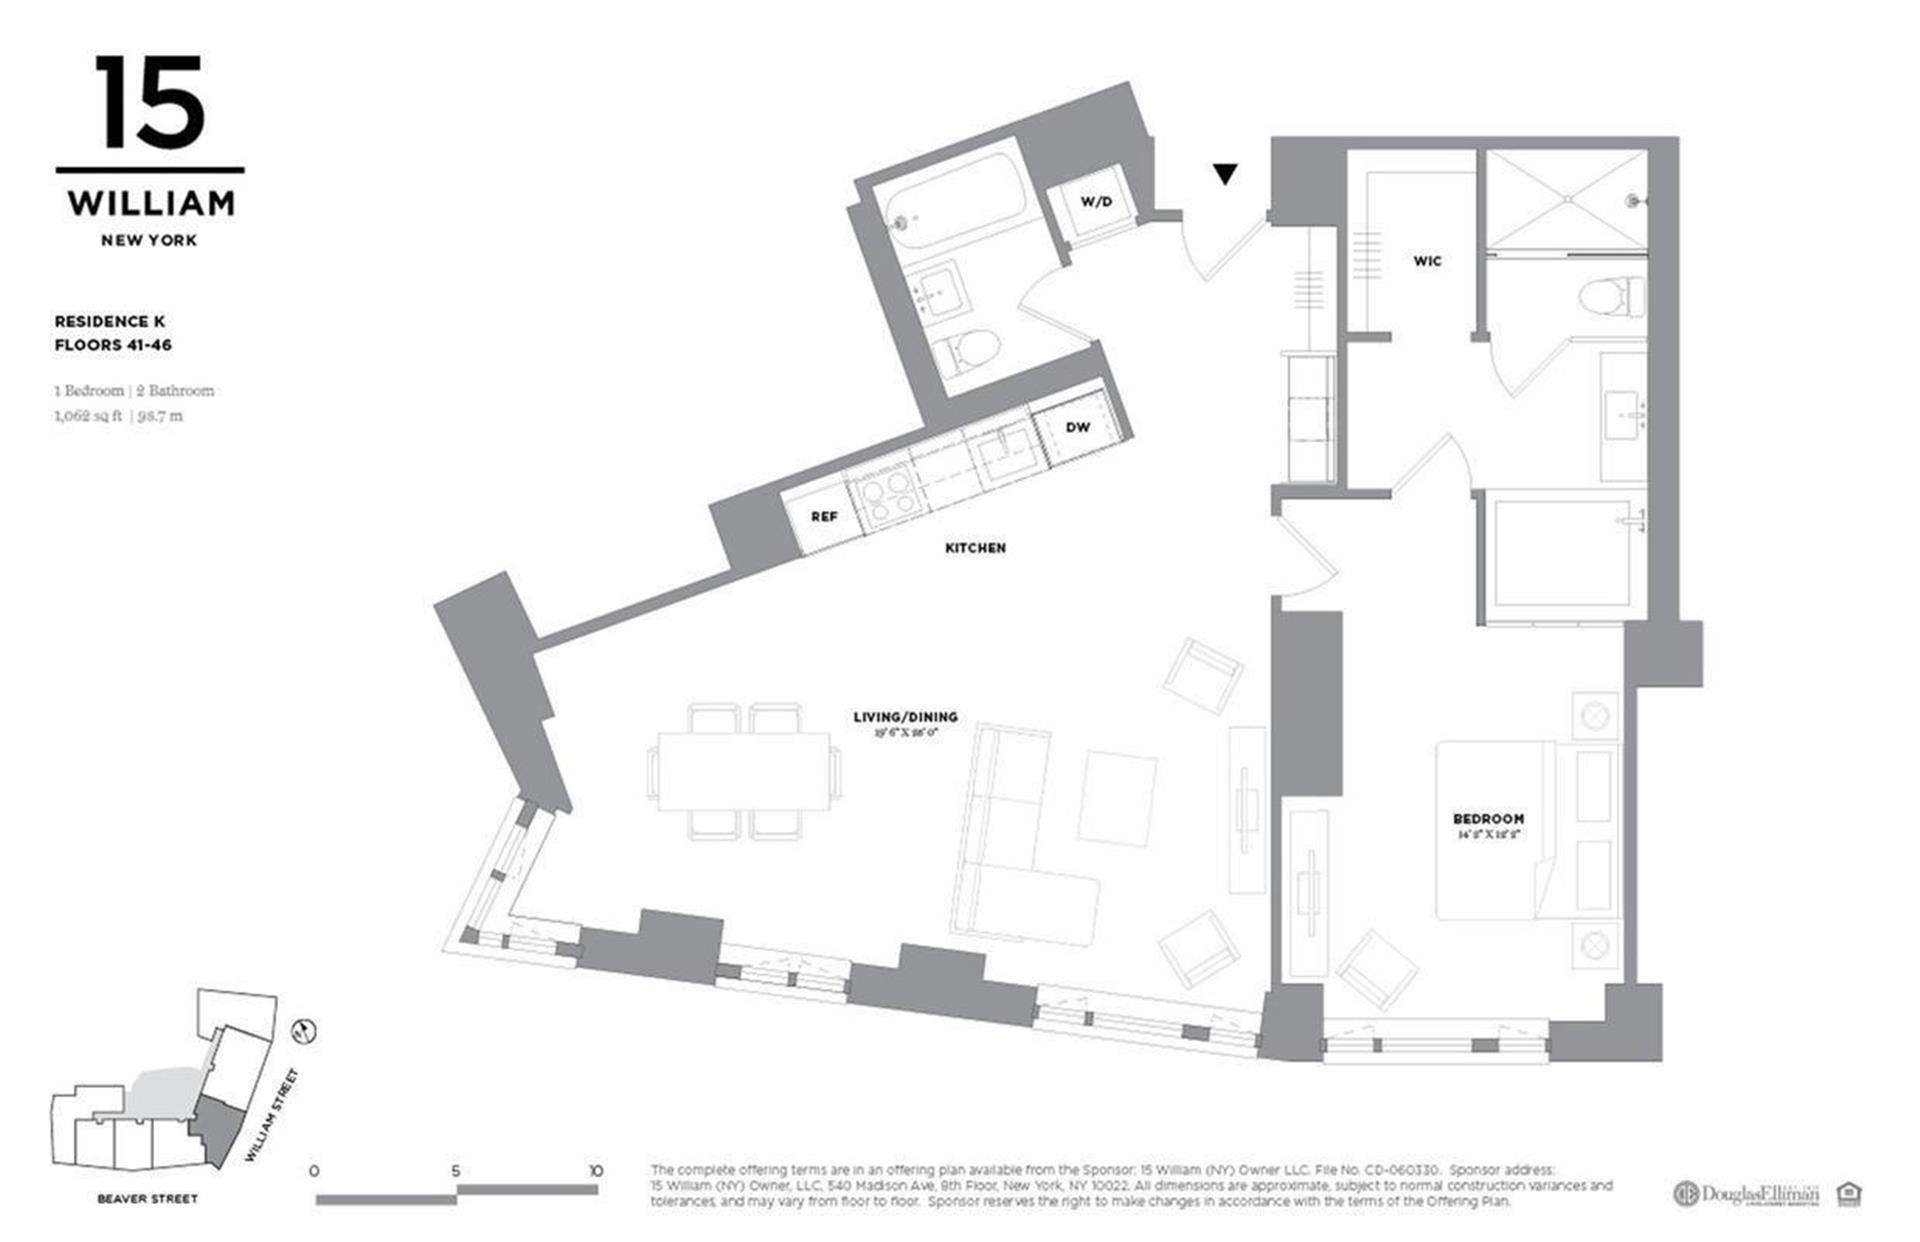 Floor plan of 15 William, 15 William St, 44K - Financial District, New York